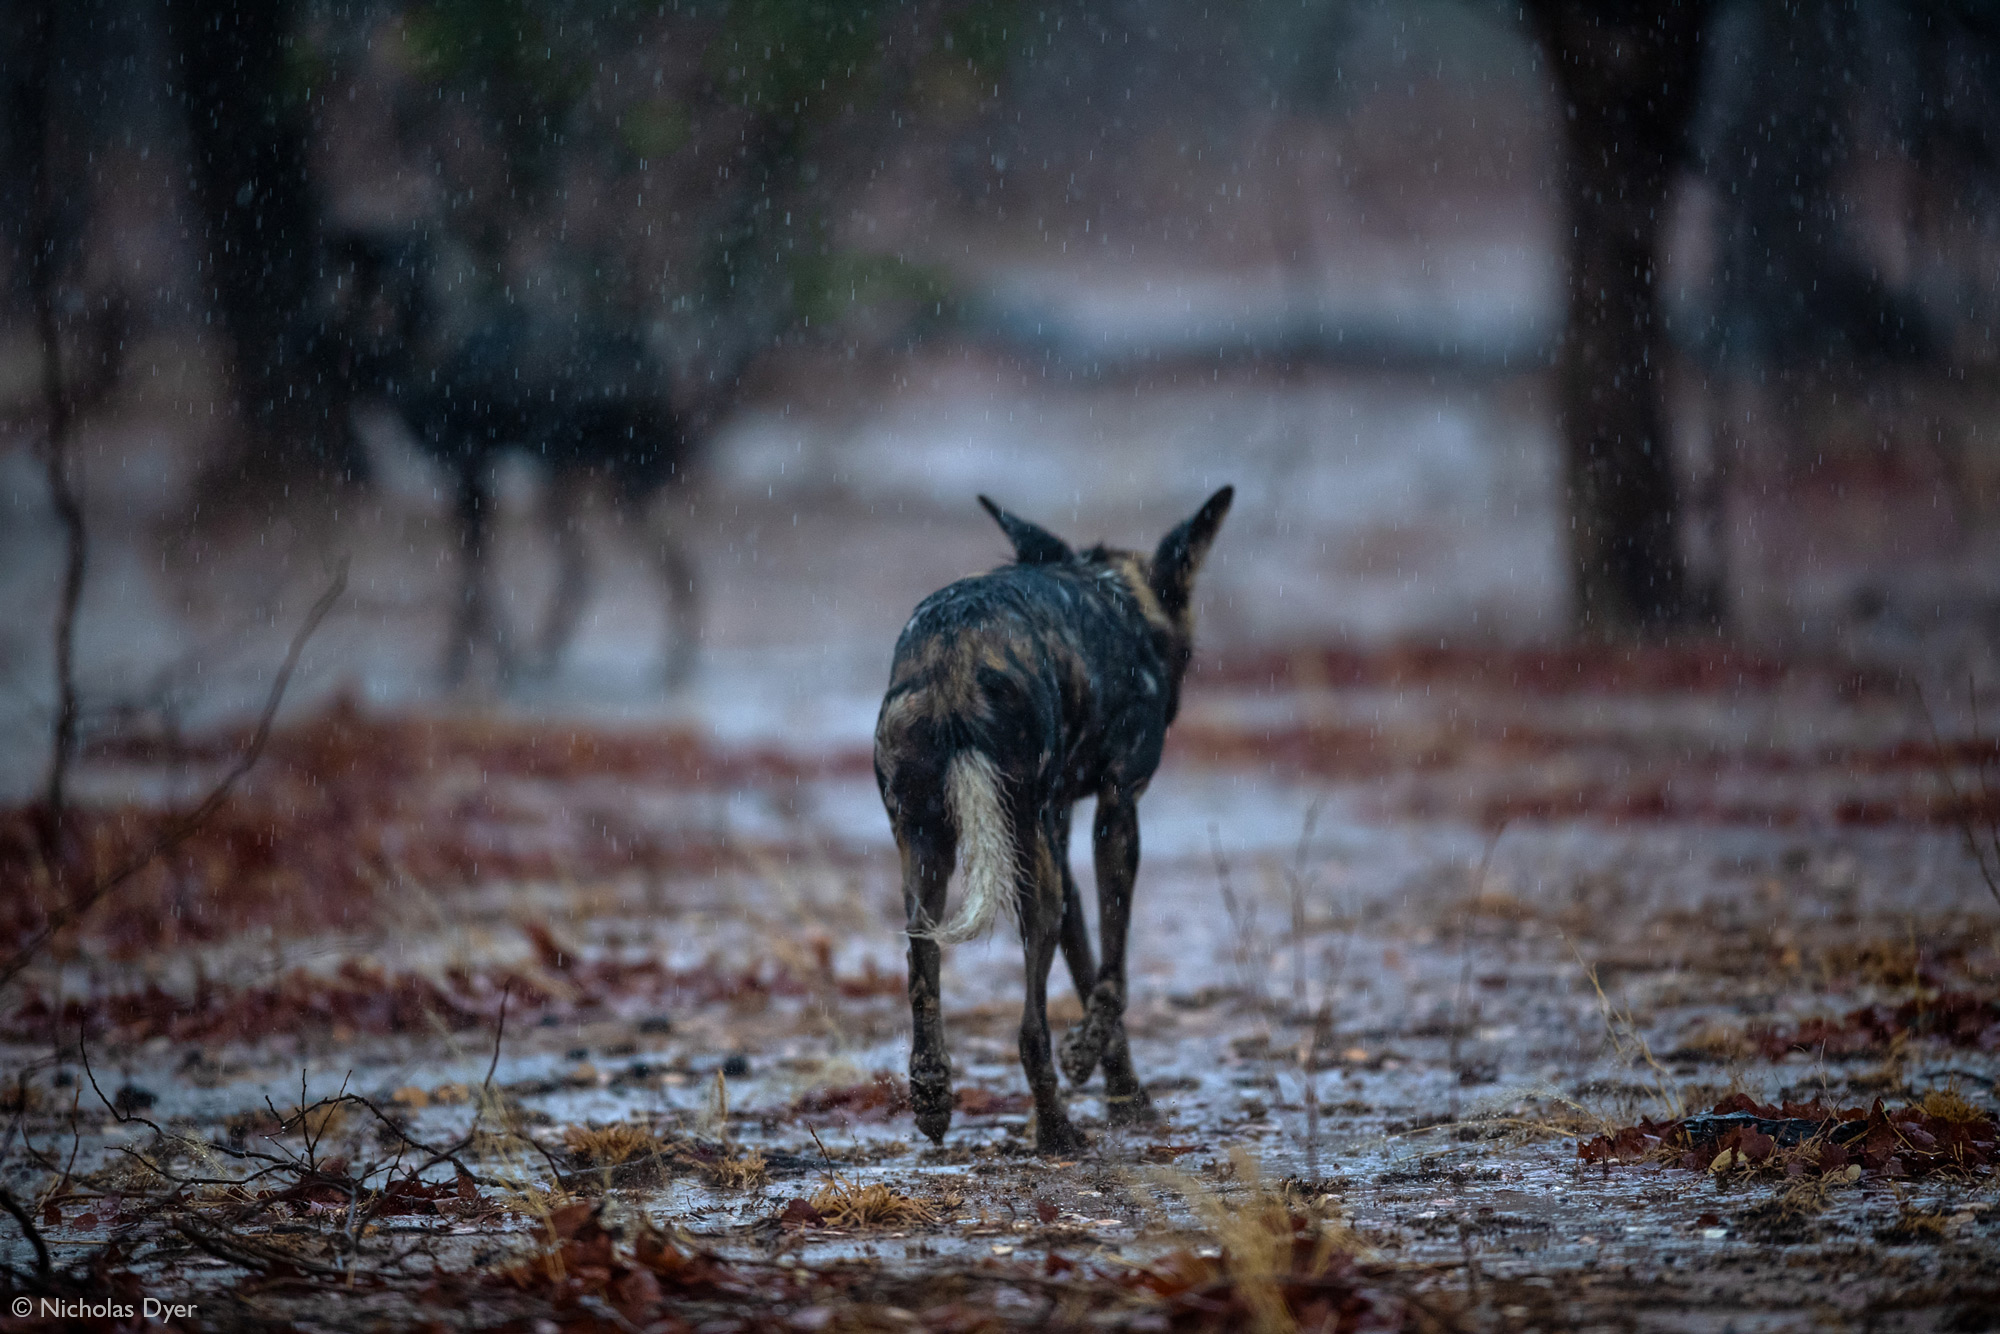 Painted wolves, African wild dogs, walking in the rain in Mana Pools National Park, Zimbabwe